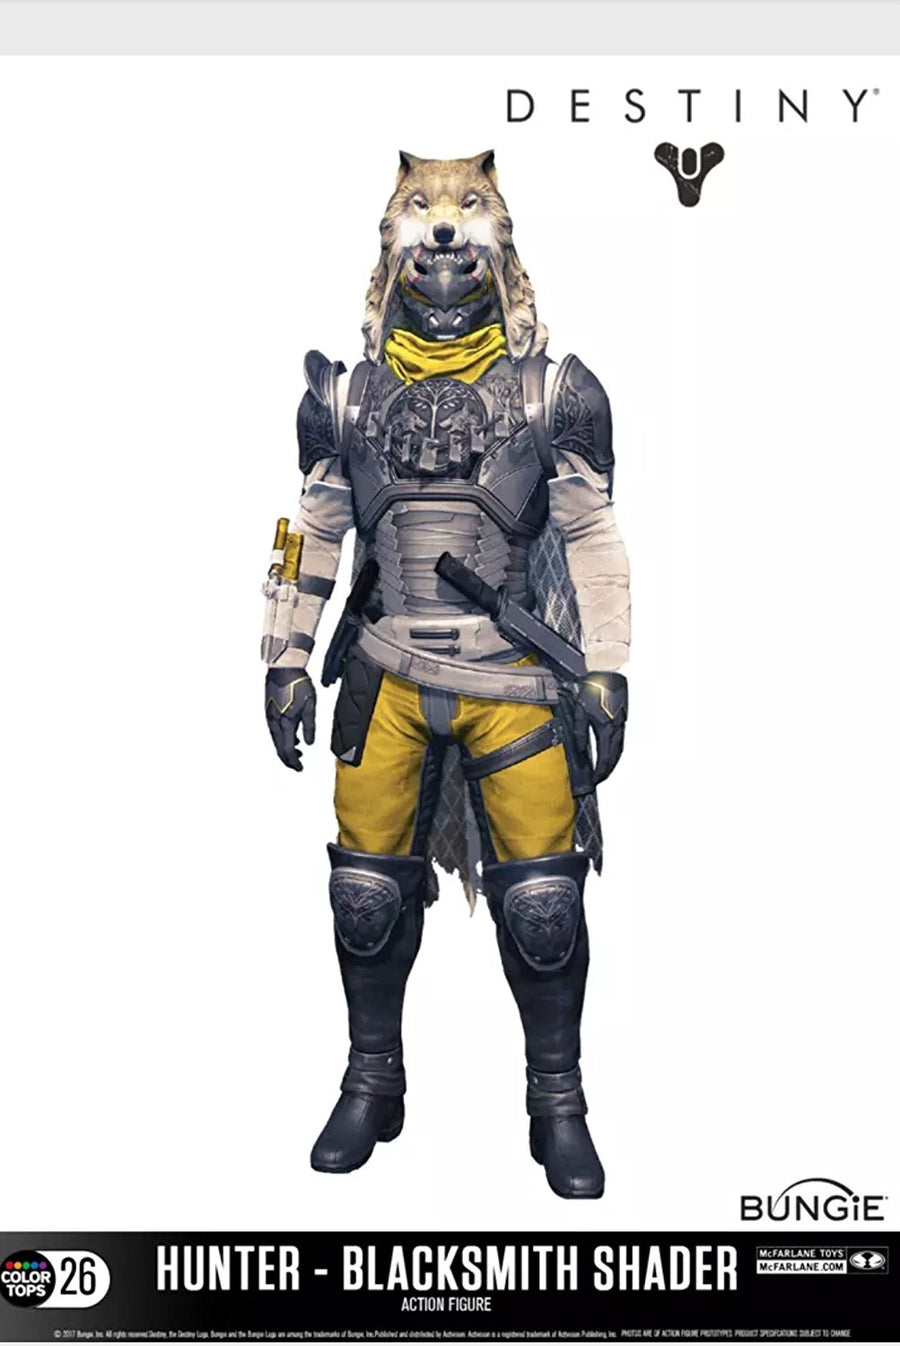 Destiny Exclusive Iron Banner Hunter Blacksmith Shader Action Figure